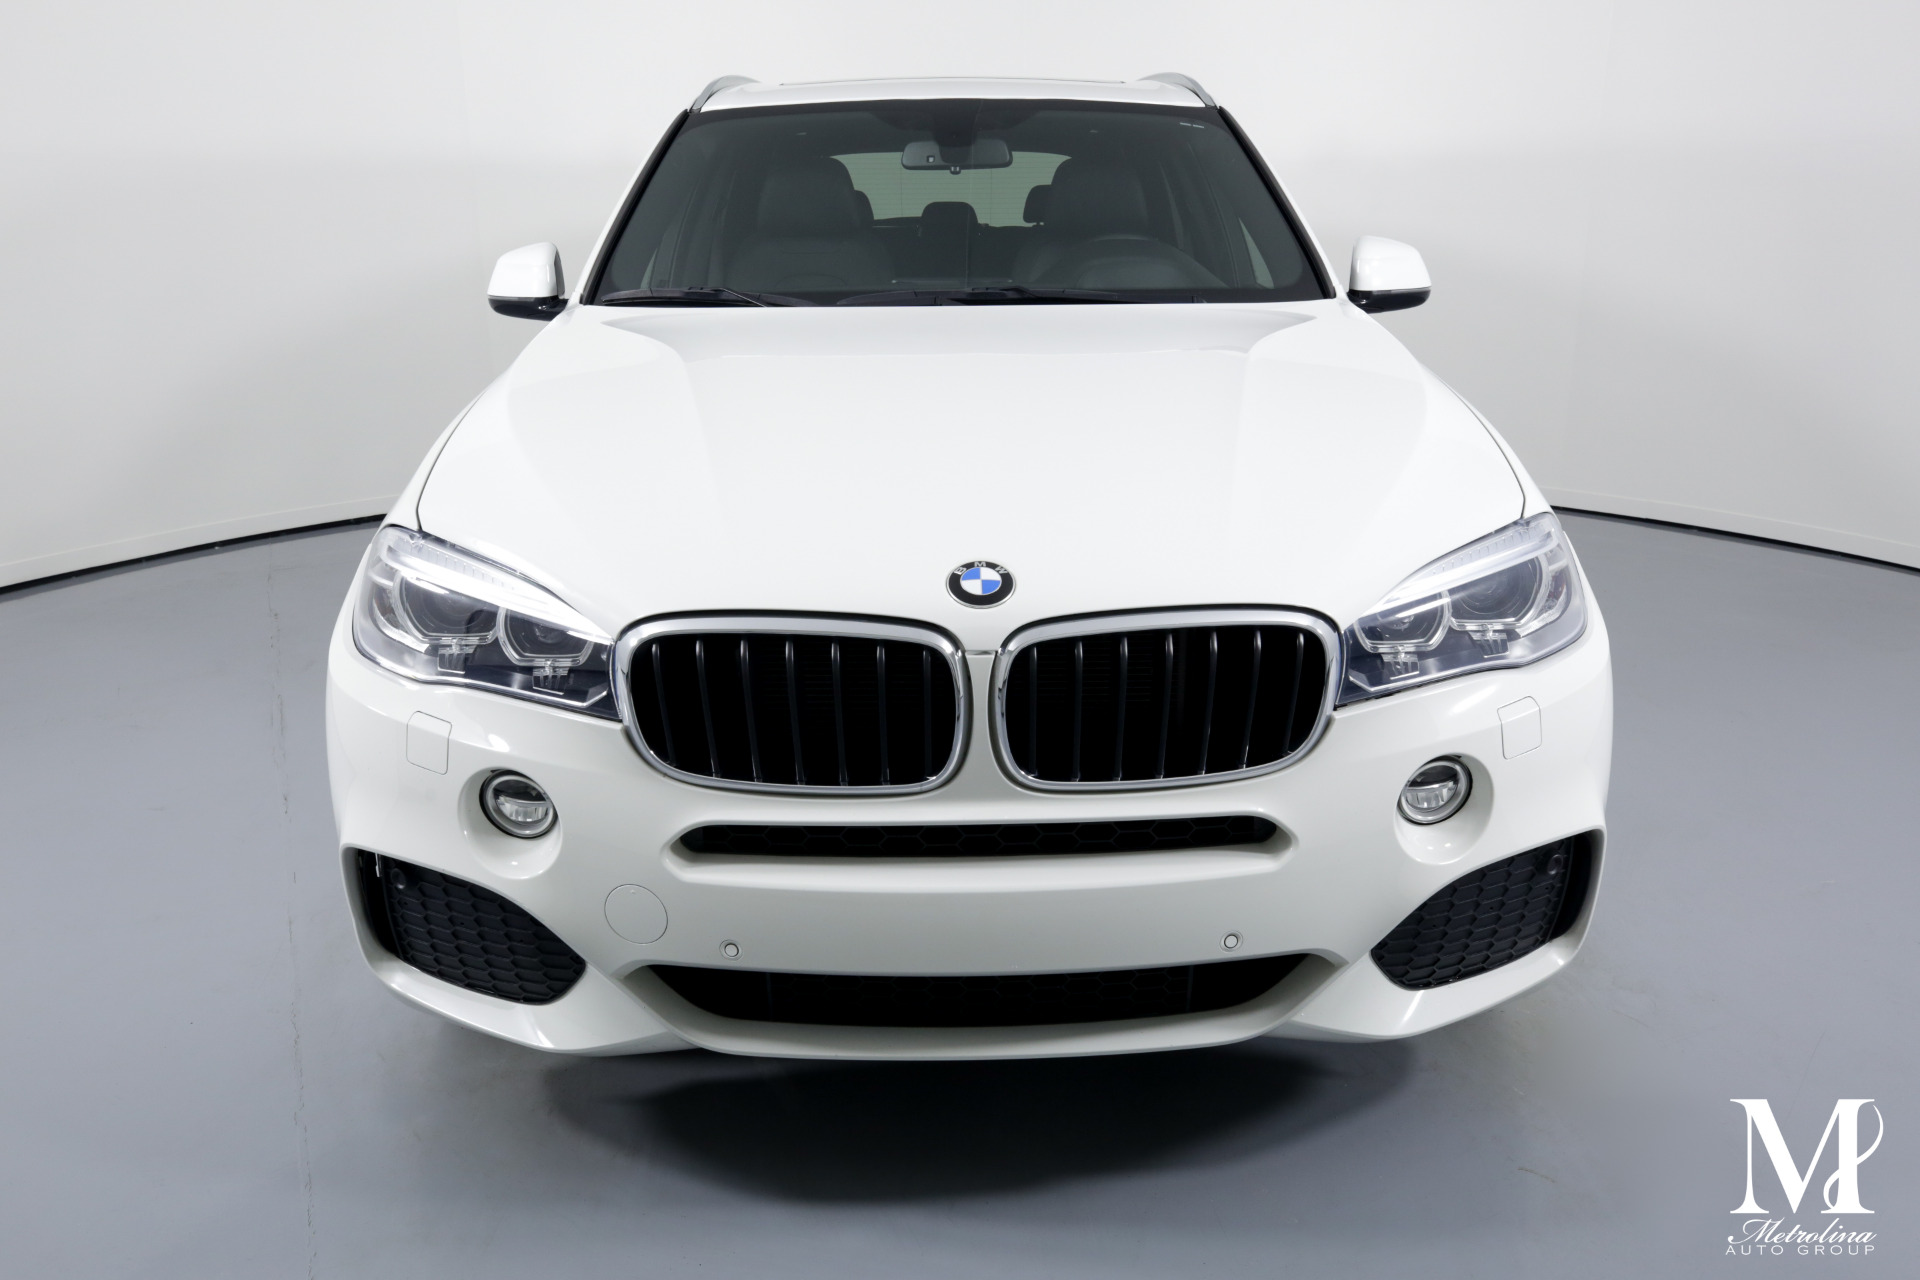 Used 2017 BMW X5 xDrive35i for sale $34,996 at Metrolina Auto Group in Charlotte NC 28217 - 3